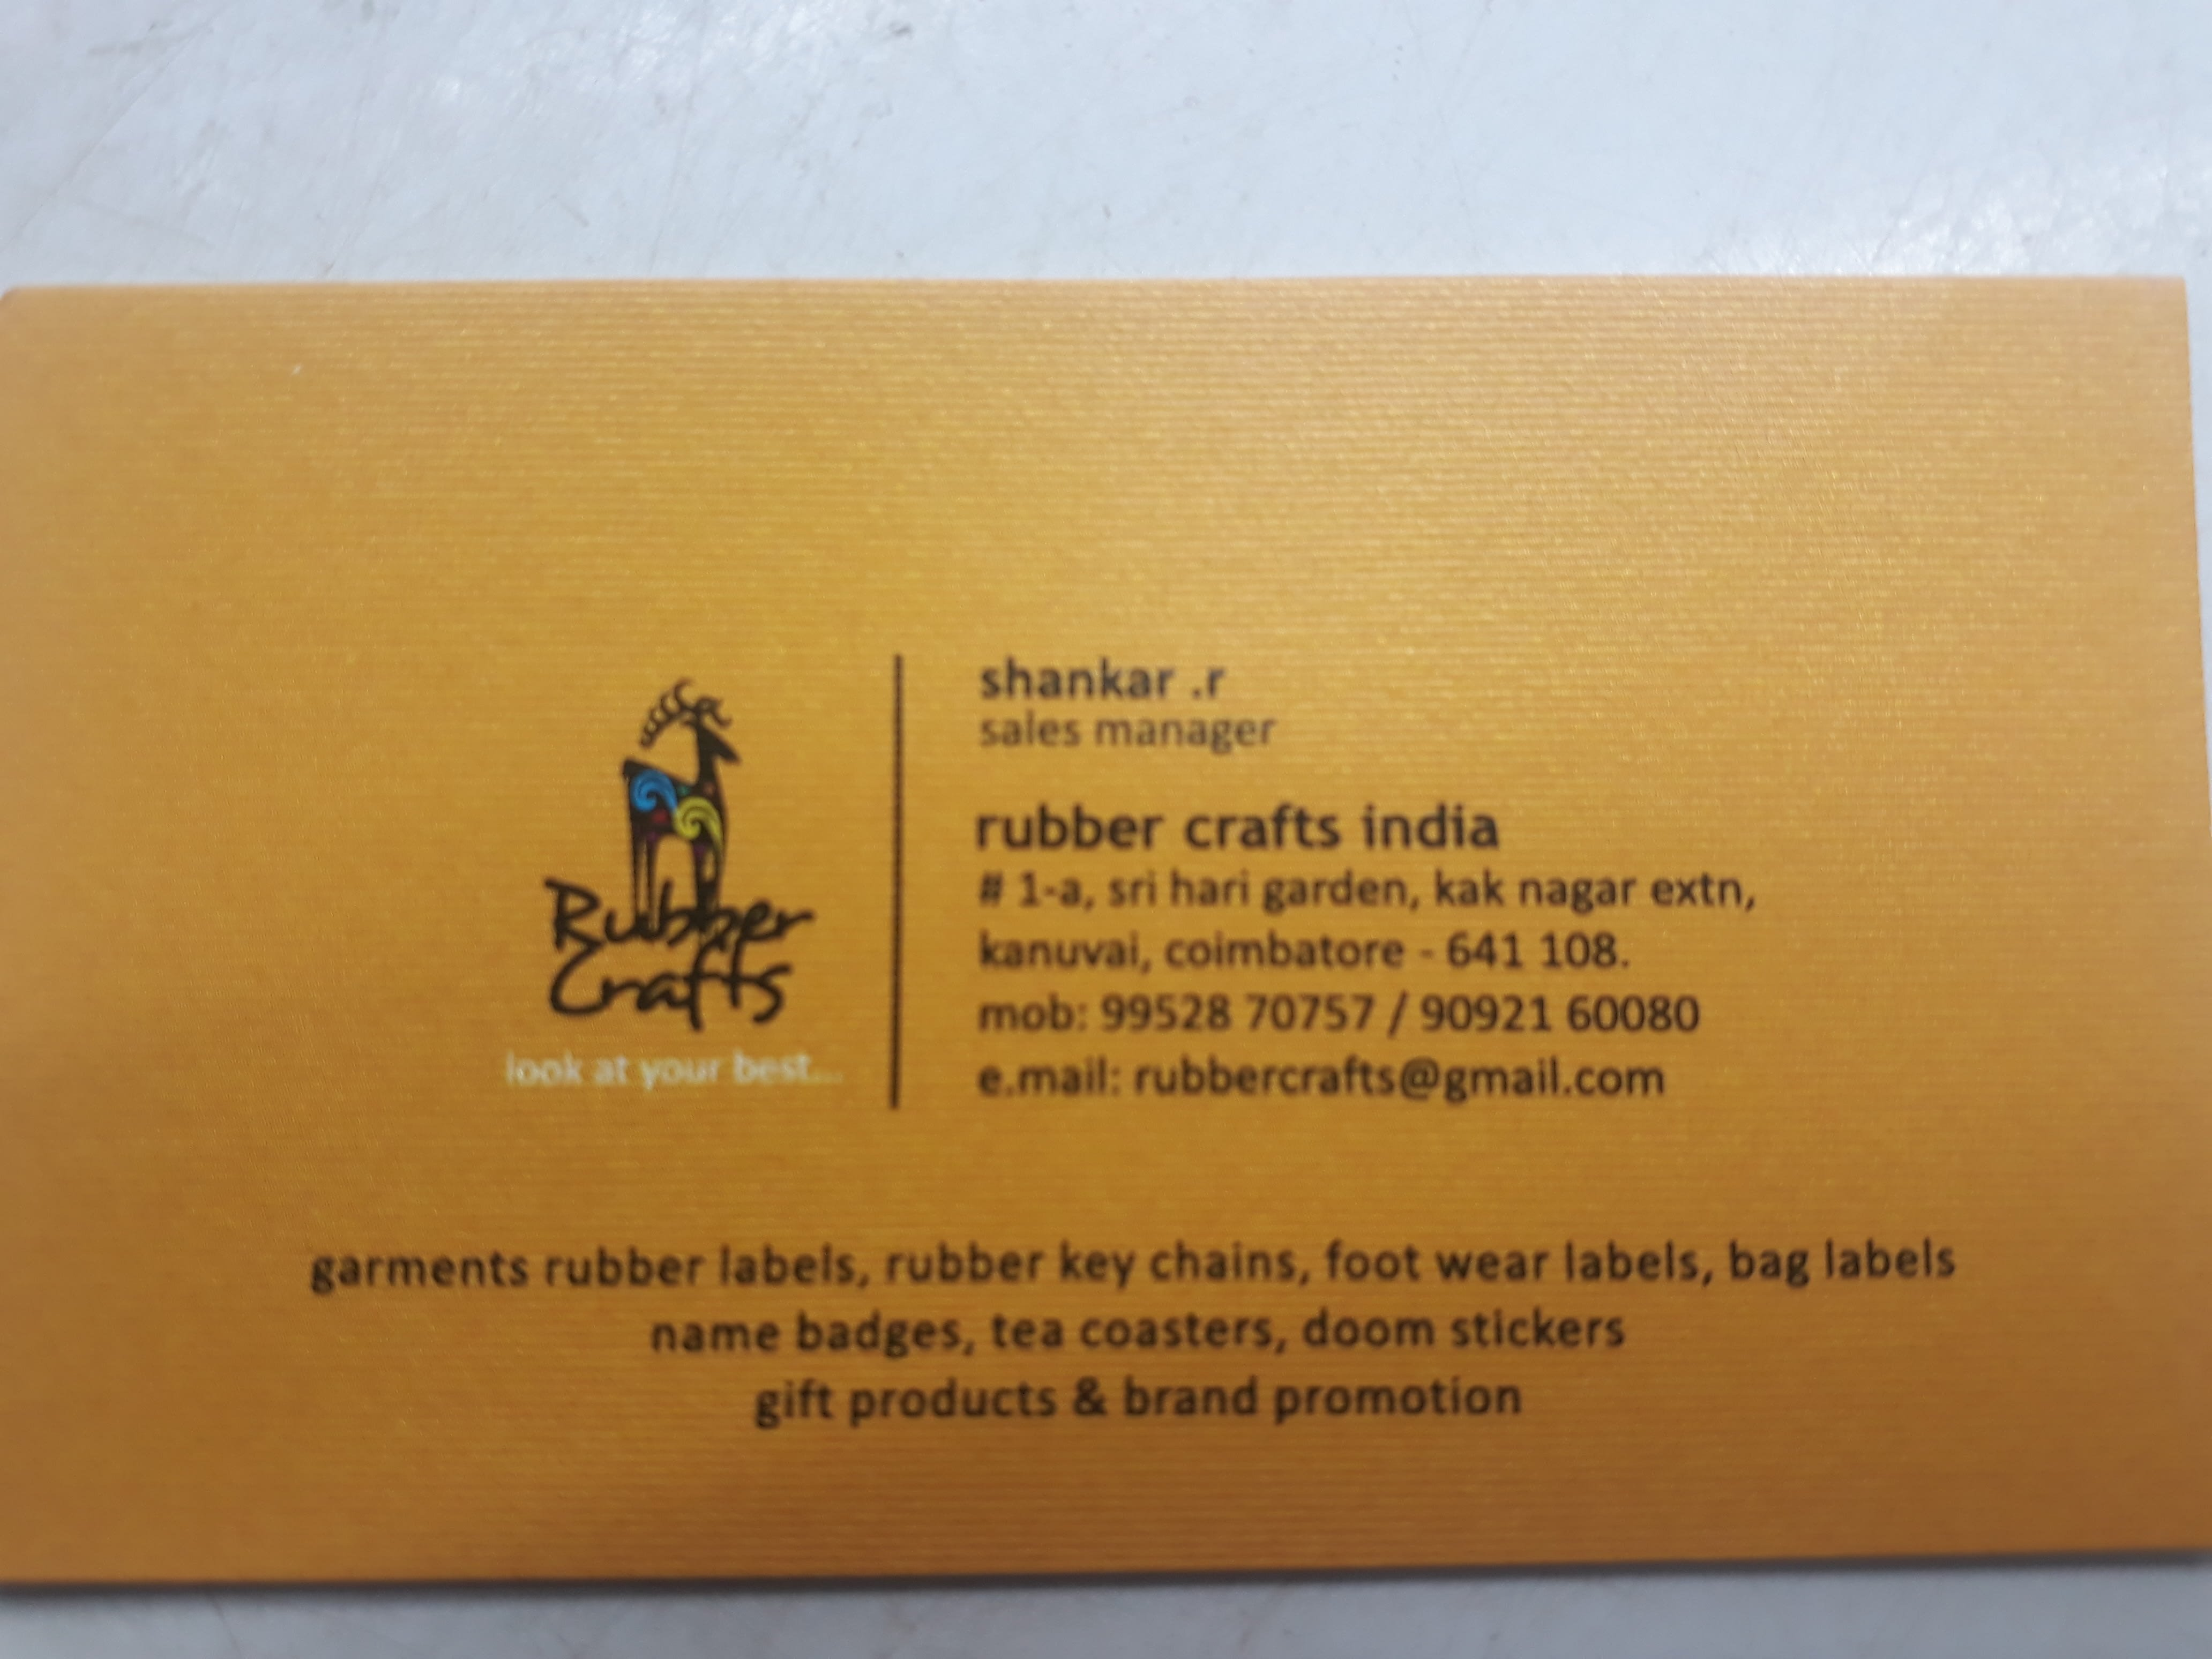 Rubber crafts india